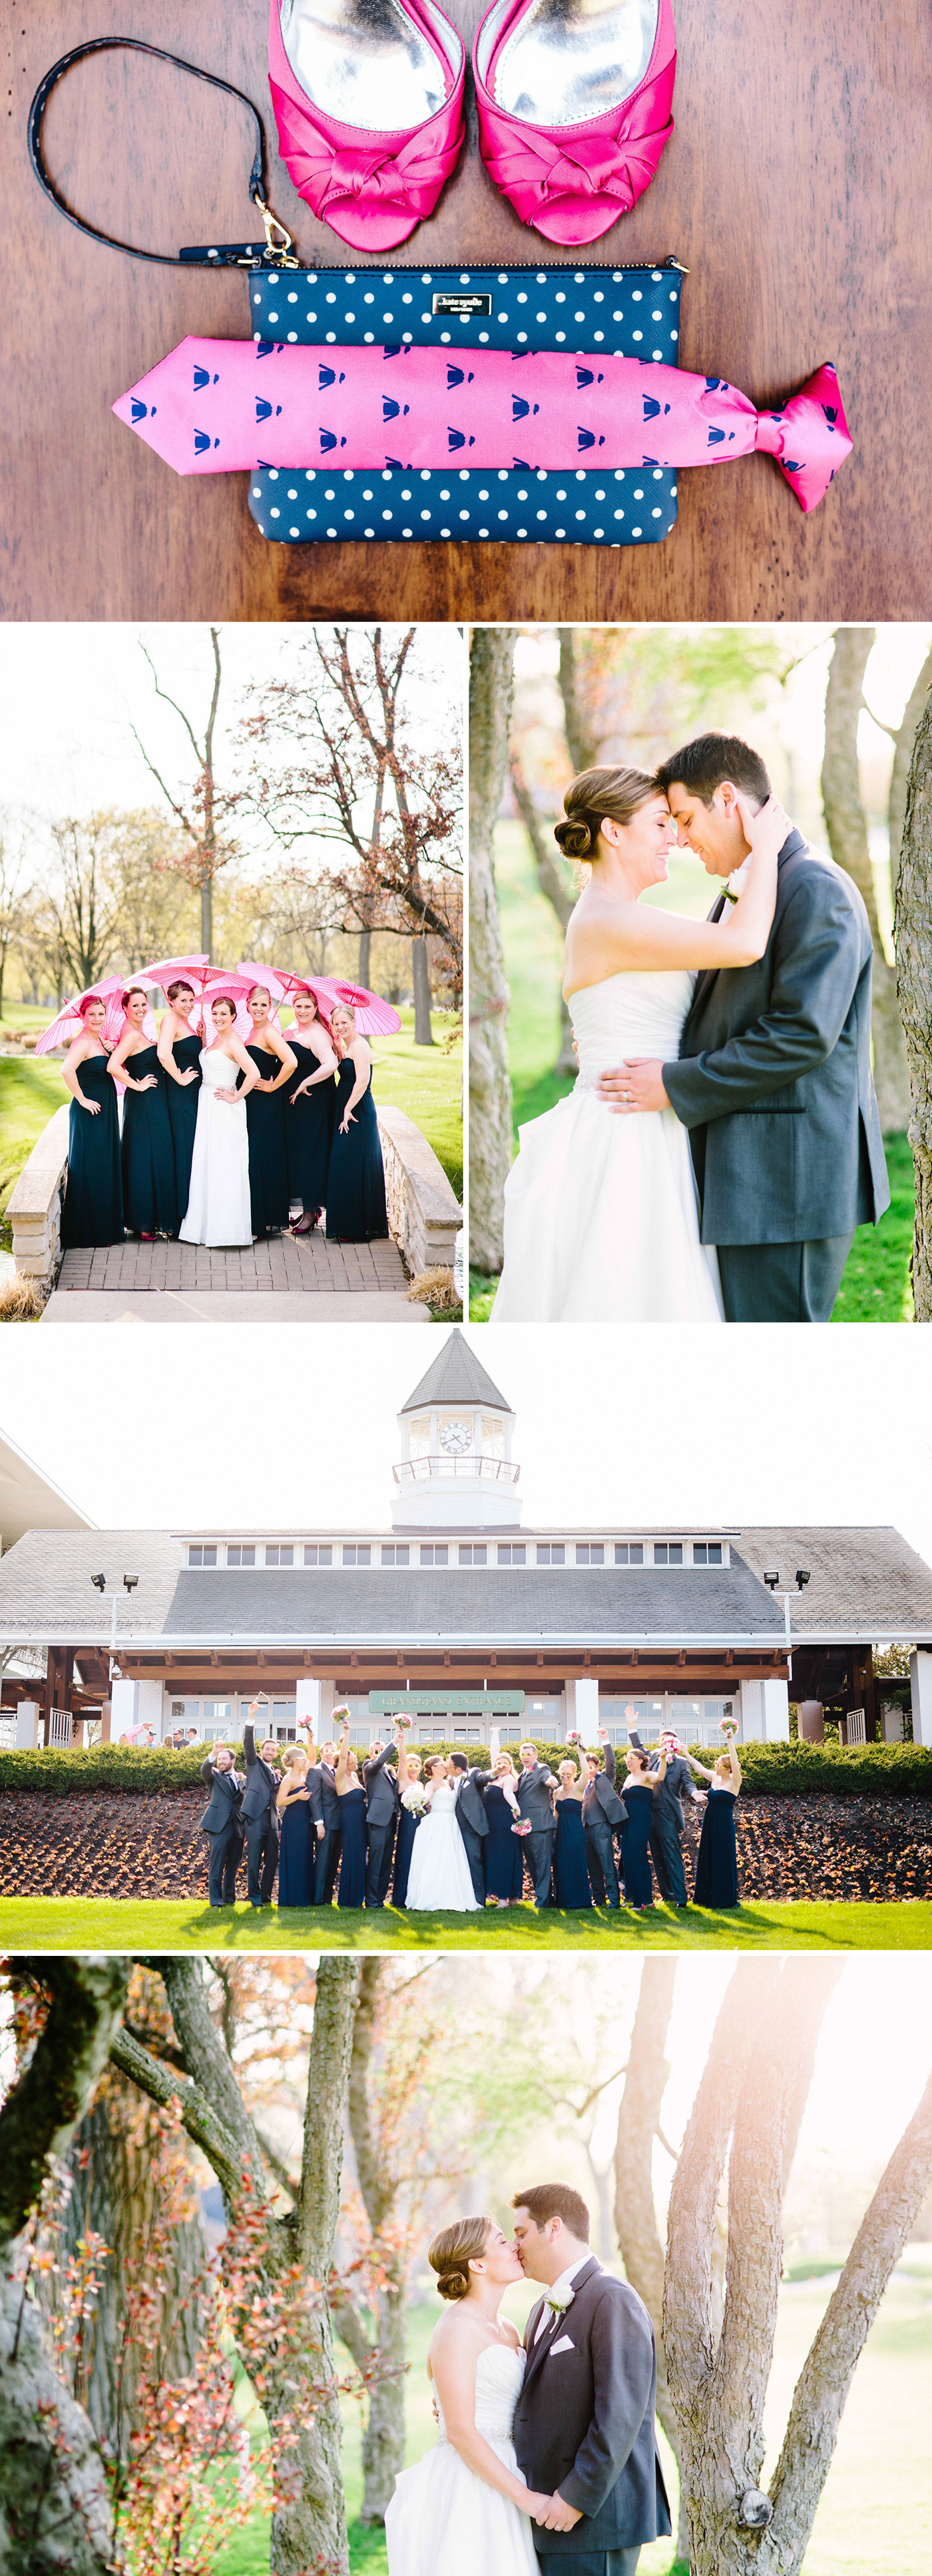 chicago-fine-art-wedding-photography-rytych